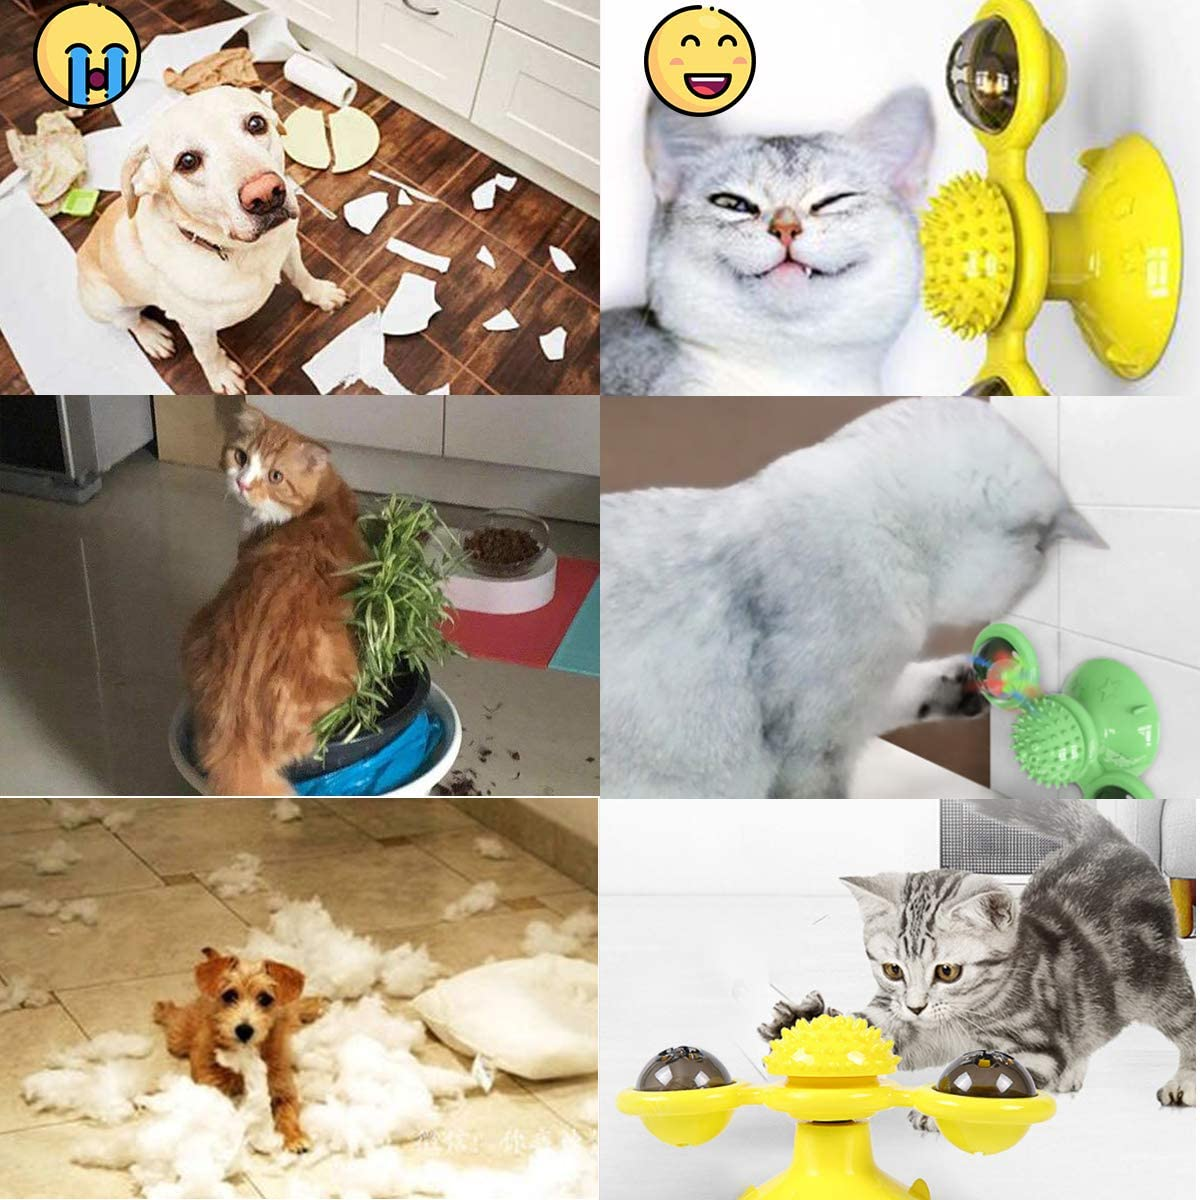 Window Interactive Windmill Cat Toy Rotatable Teasing Pet Cat Toys for Indoor Cats with Silicone Scratching Tickle Cats Hair Brush Cat Toy with Catnip and Led Balls and Suction Cup for Floor Door